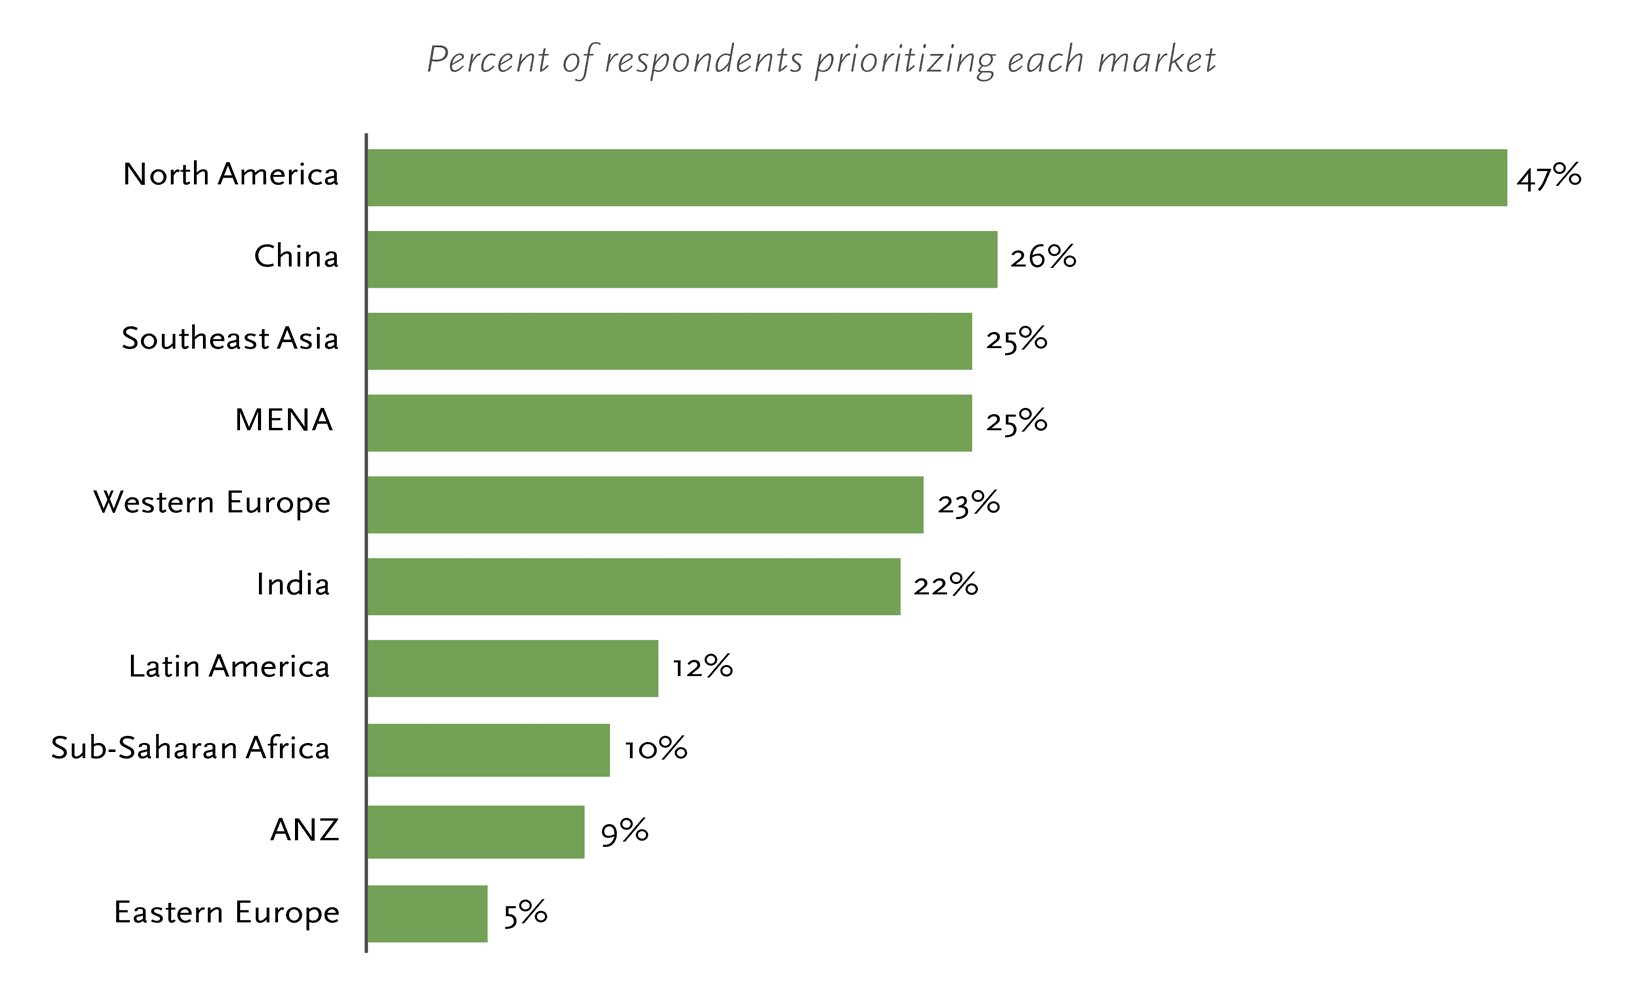 Percent of respondents prioritizing each market